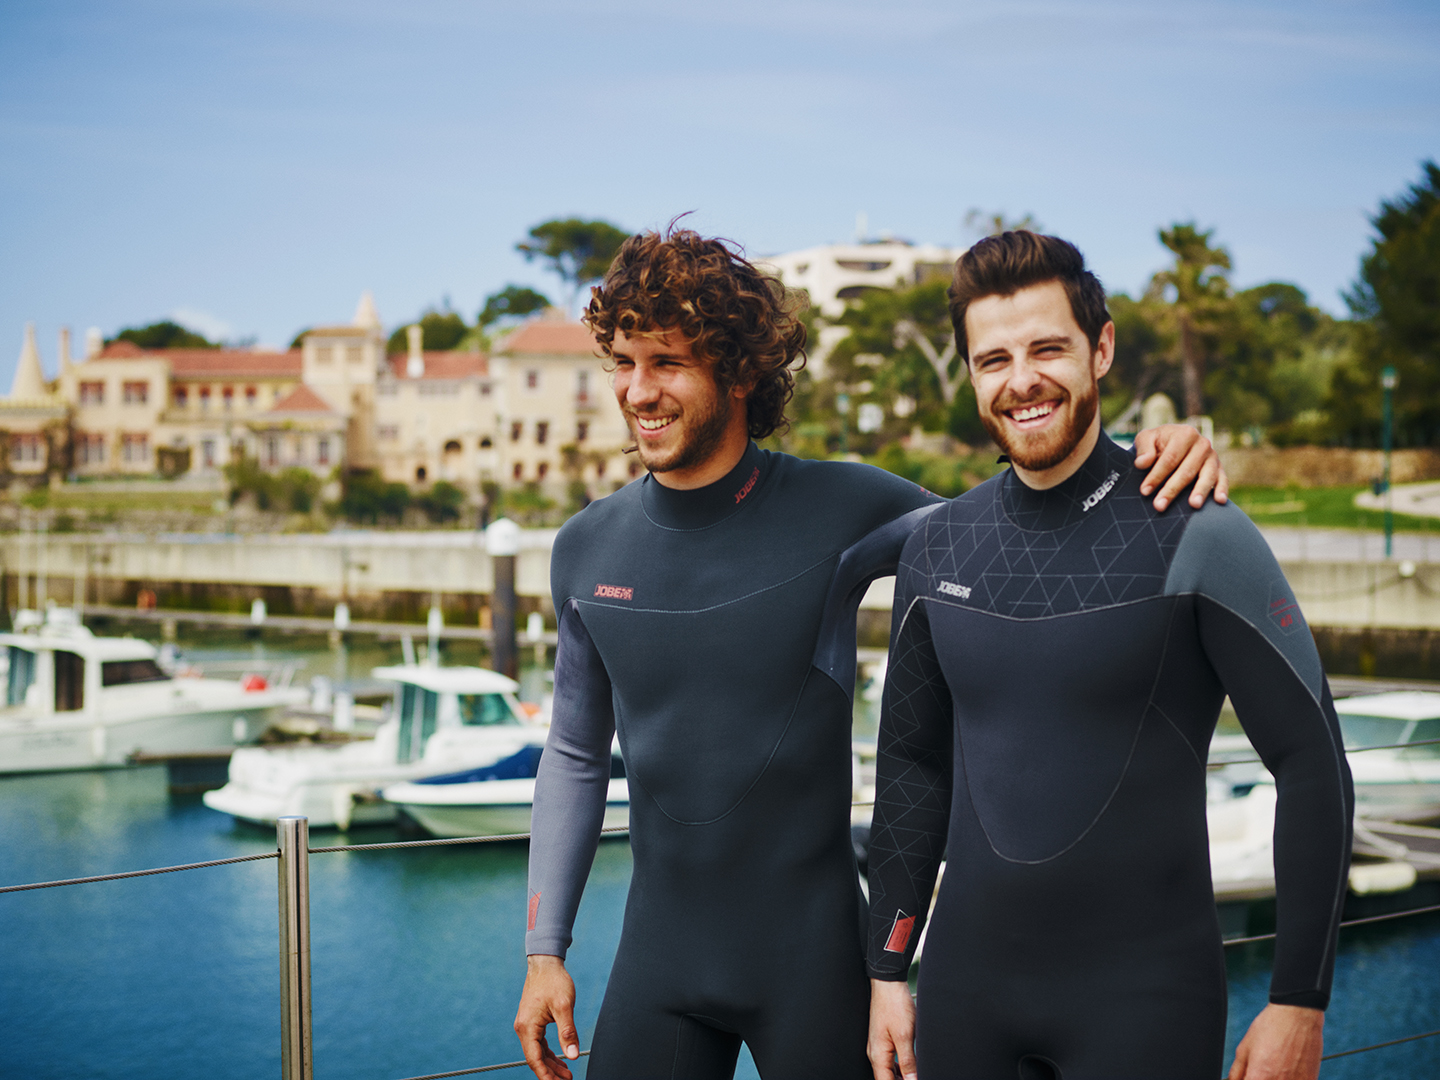 Men Wearing Jobe Wetsuits